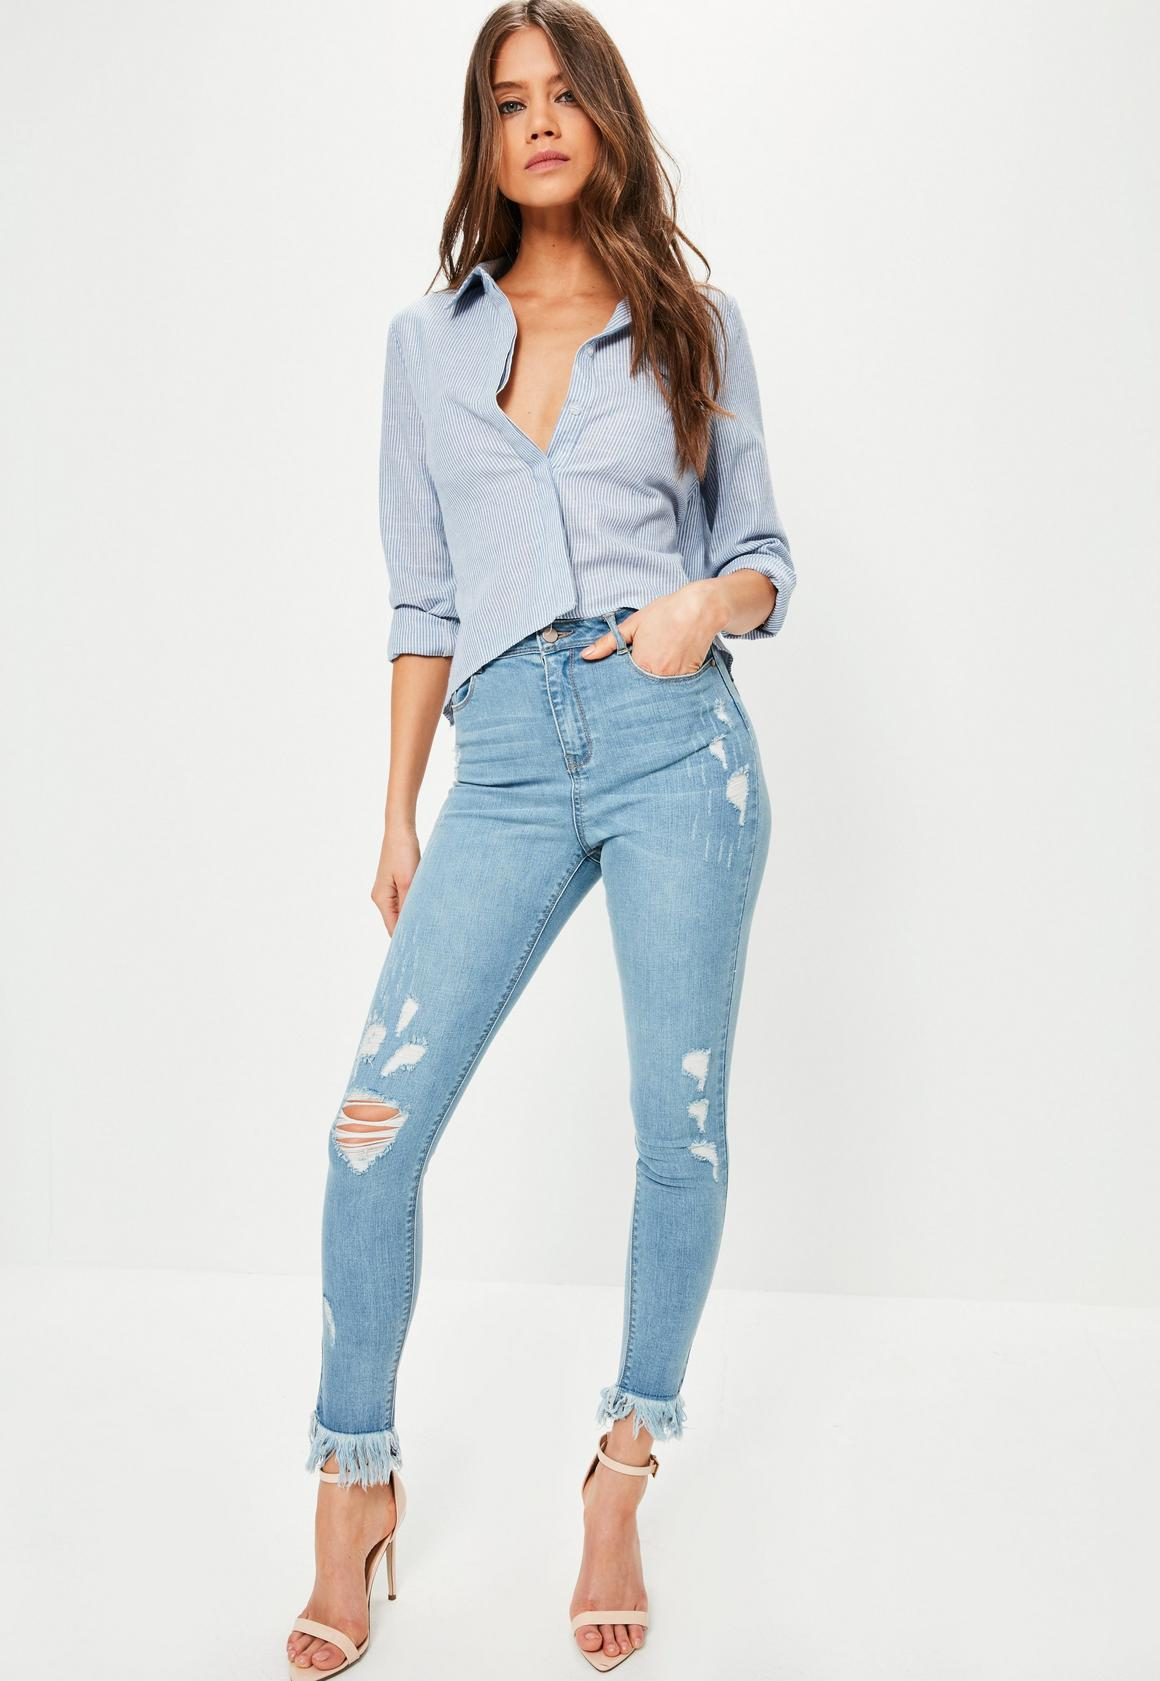 Ripped Jeans, Distressed Jeans for Women | Missguided